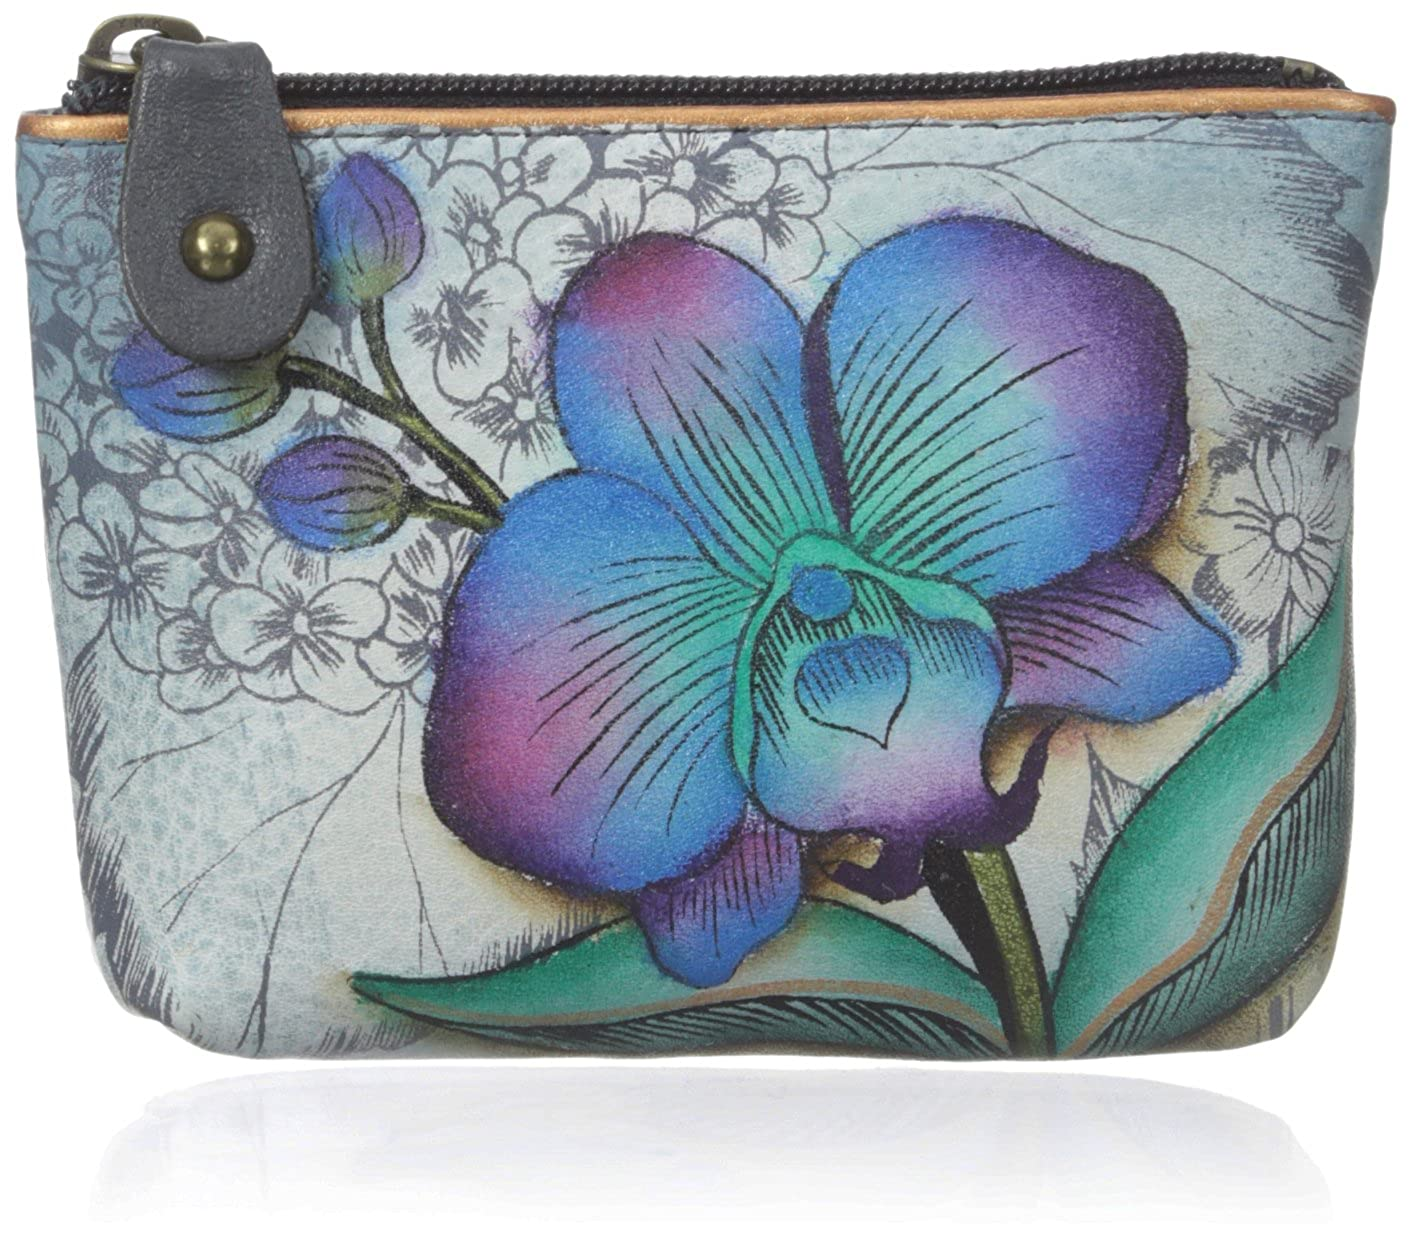 Anuschka Women's Leather Coin Purse | Genuine Soft Leather, Hand-painted Original Art Blb One Size 1031-LTHR